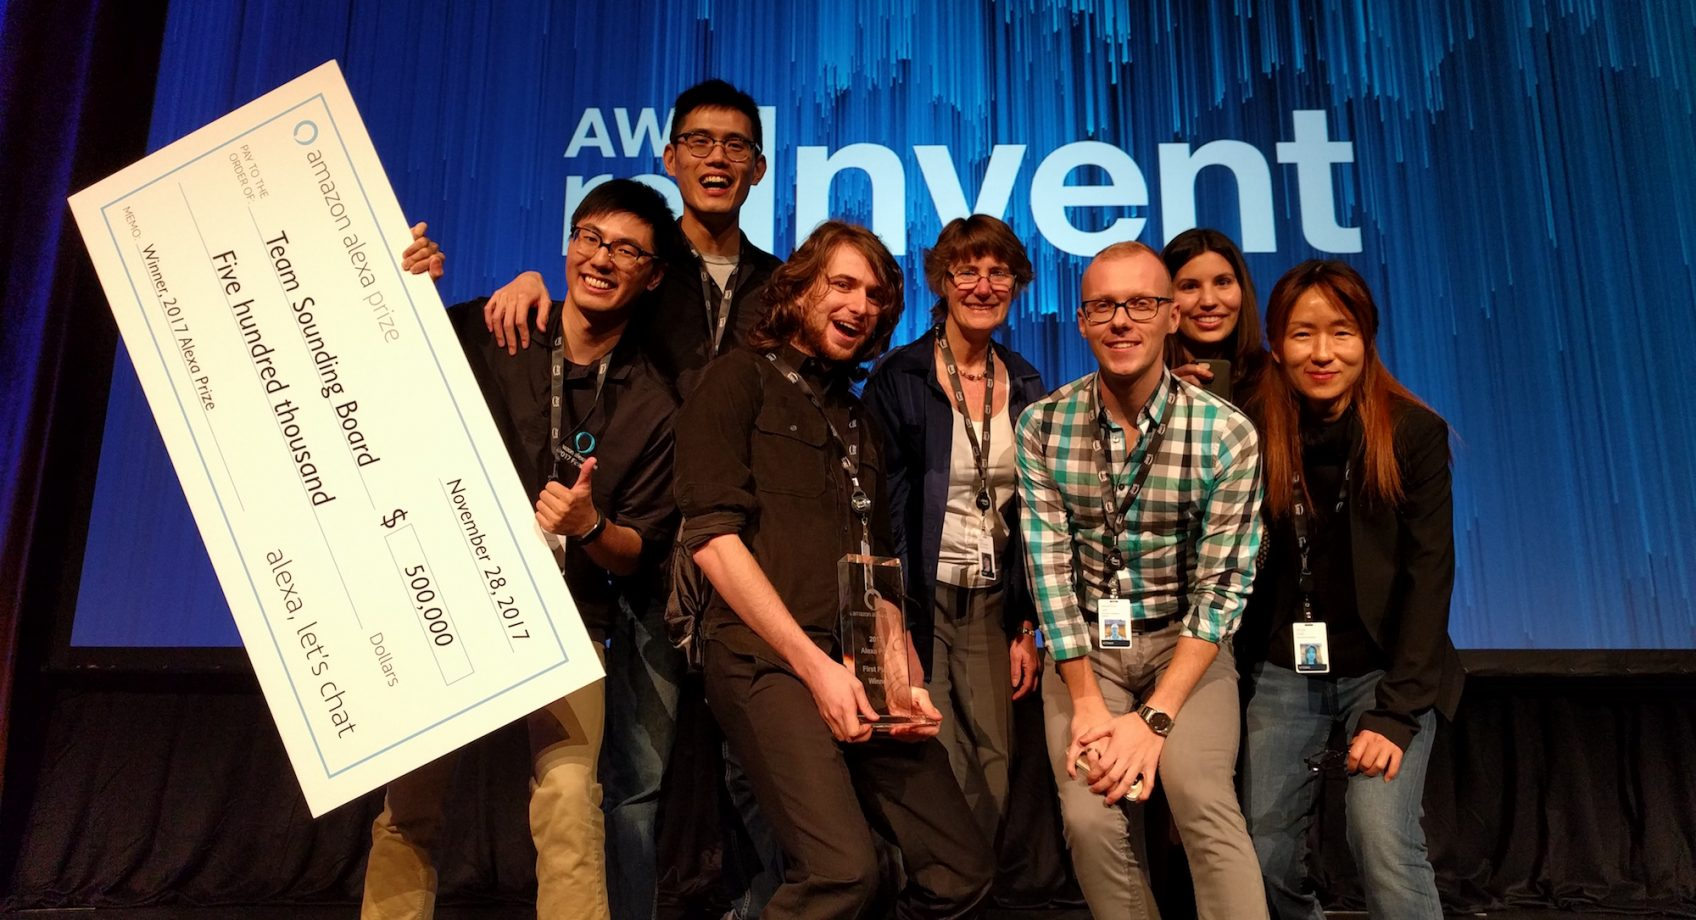 UW Team wins international Amazon Alexa Prize for the design of conversational AI Banner